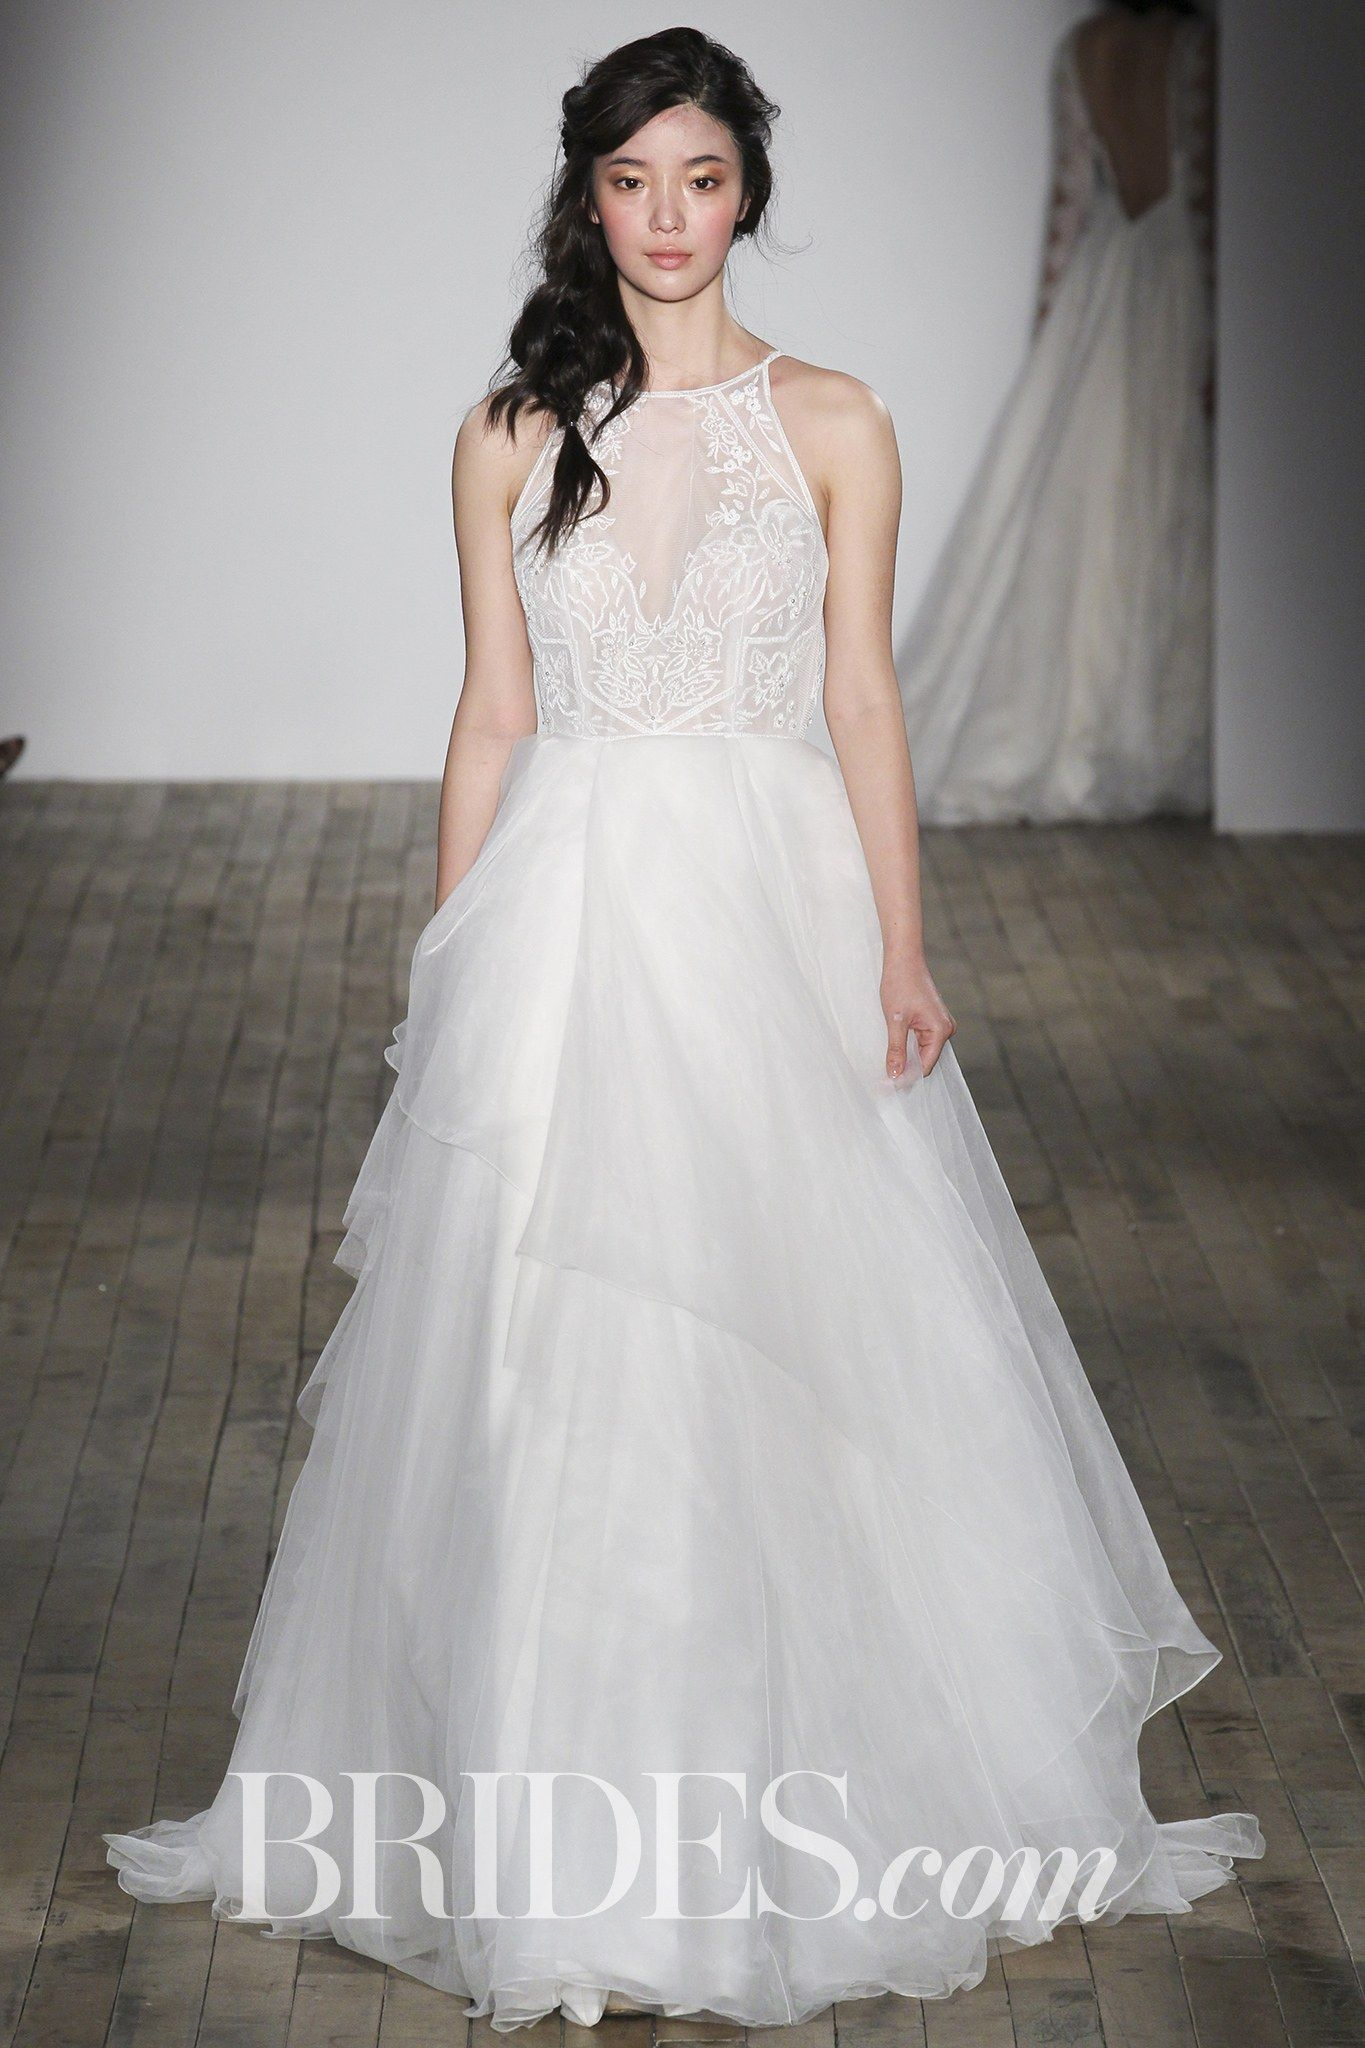 Hayley paige bridal u wedding dress collection spring brides